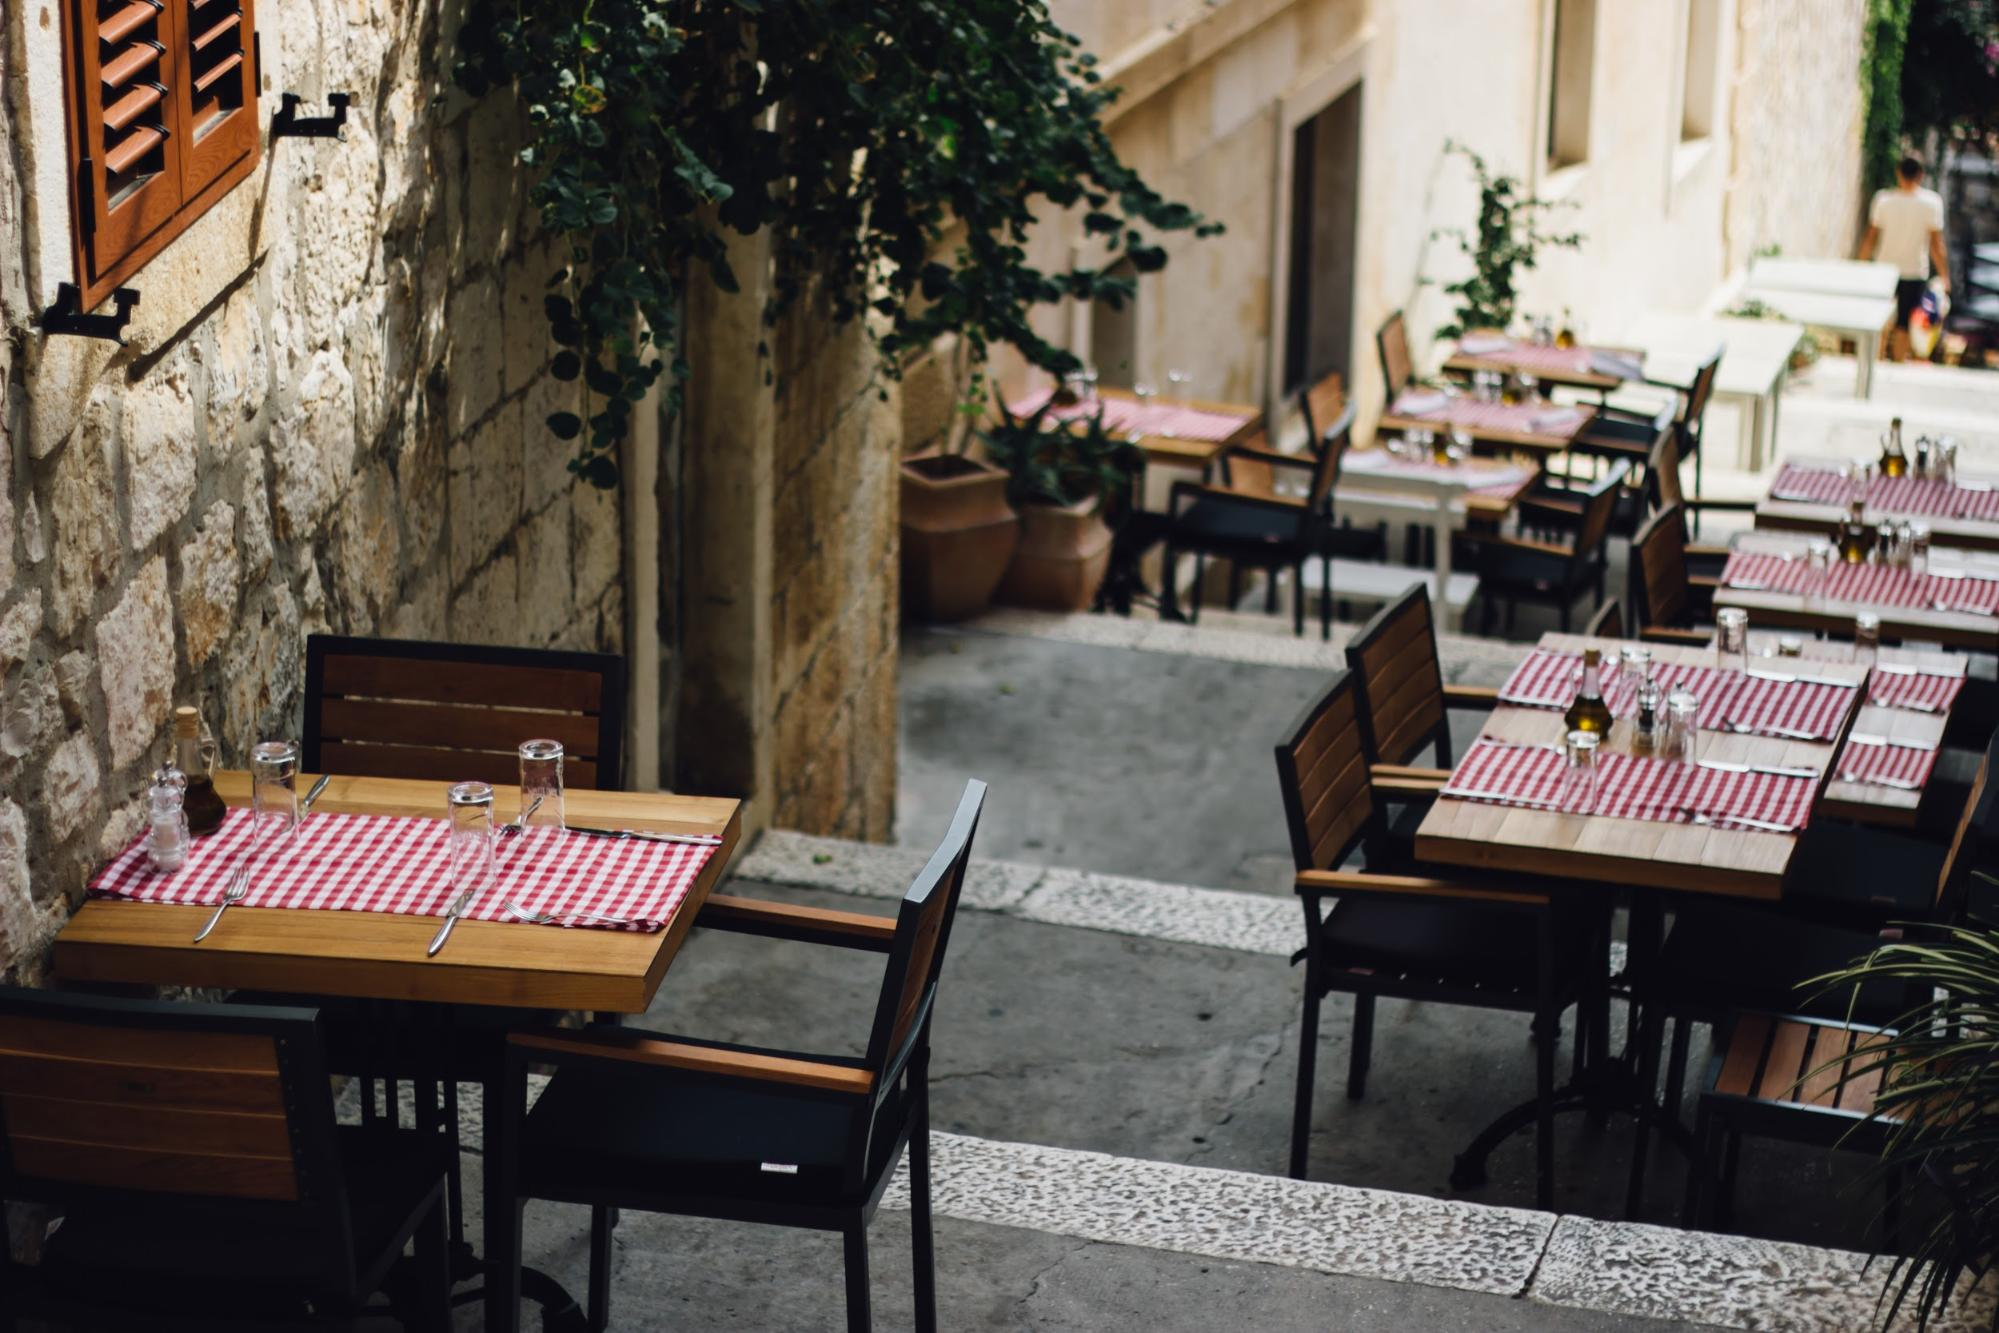 Tables in a good restaurant design